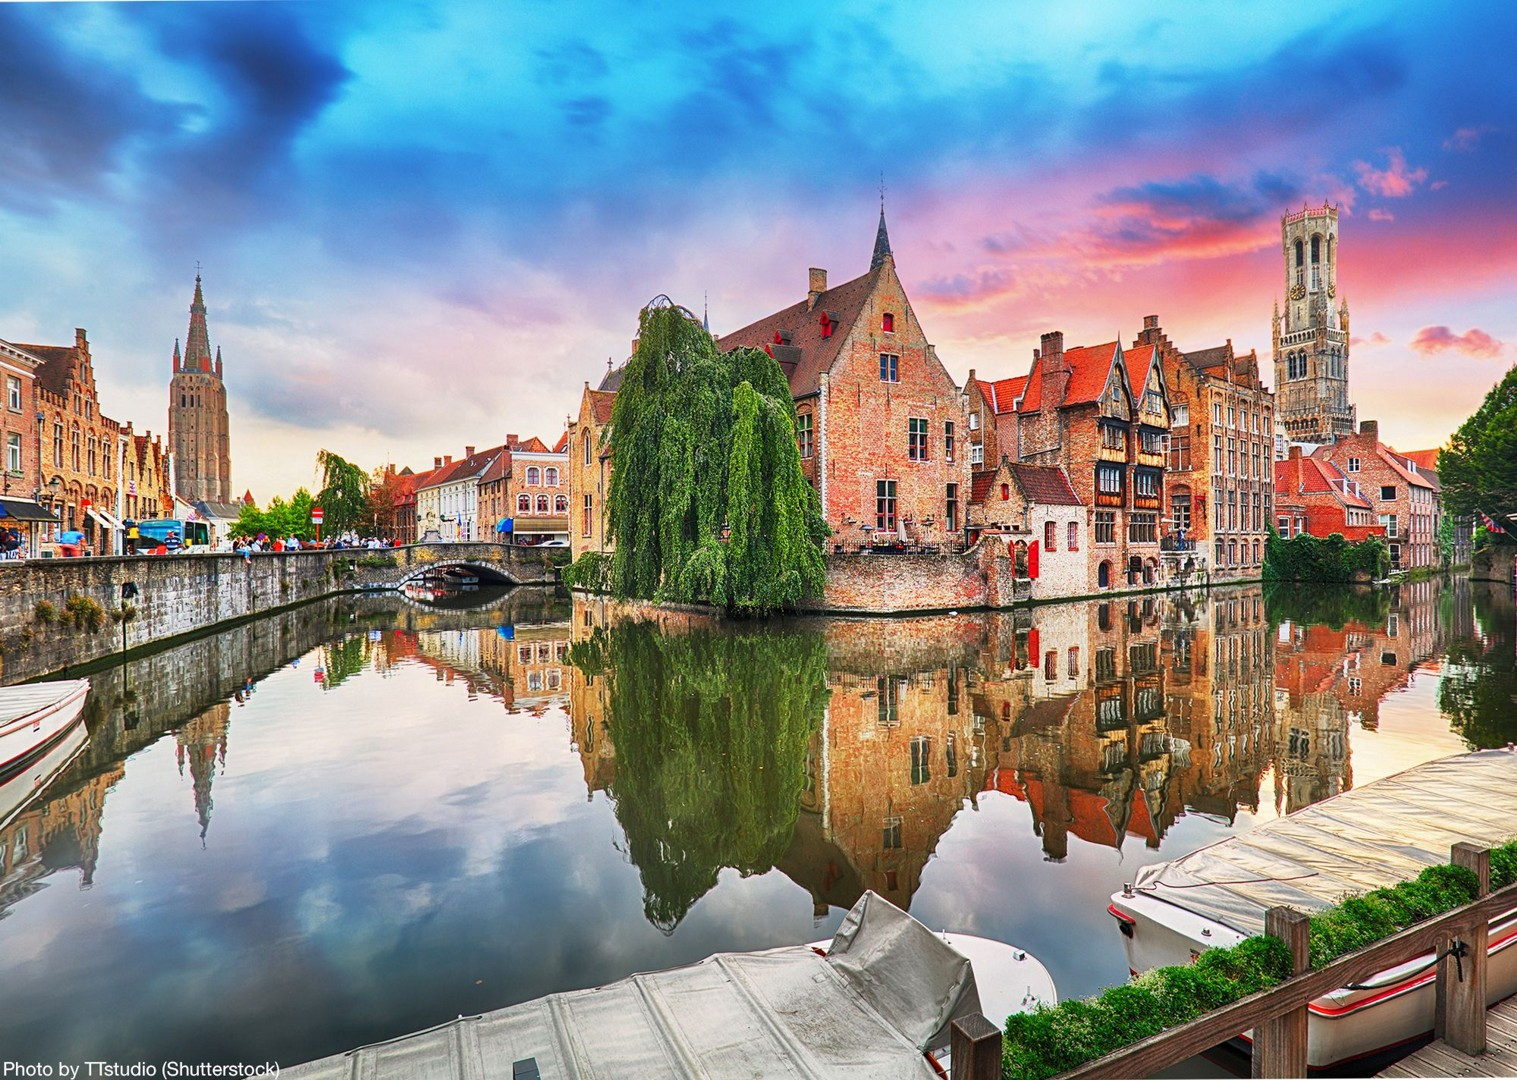 belfry-of-bruges-belgium-to-amsterdam-cycling-premium-boat-tour.jpg - Holland and Belgium - Bruges to Amsterdam - Premium Bike and Barge Holiday - Leisure Cycling